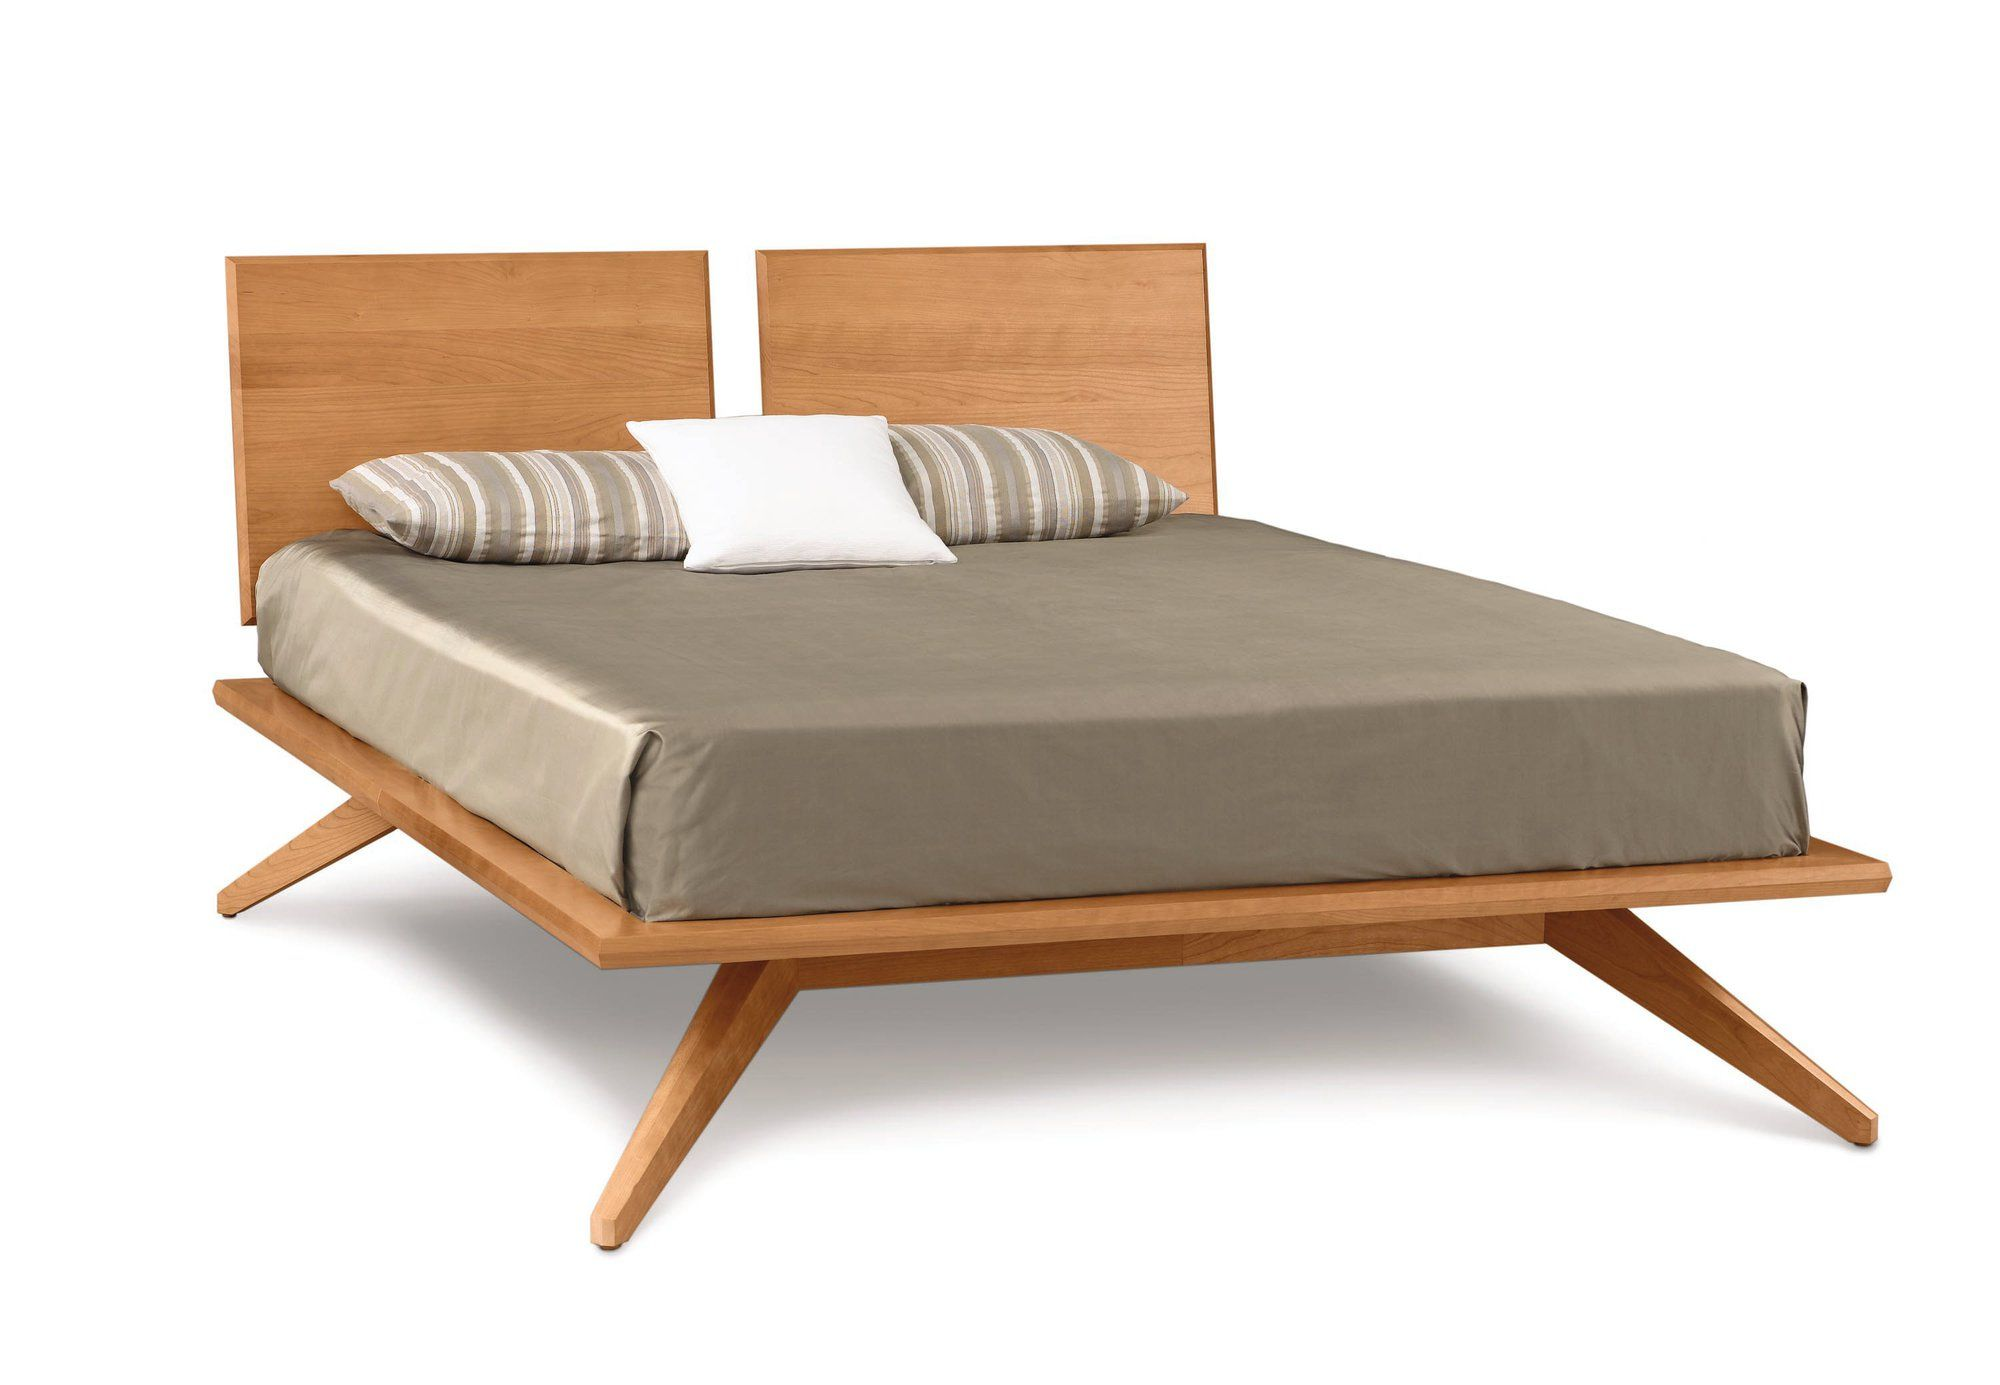 Copeland Furniture Astrid Bed with 2 Adjustable Headboard Panels, slate maple $2772